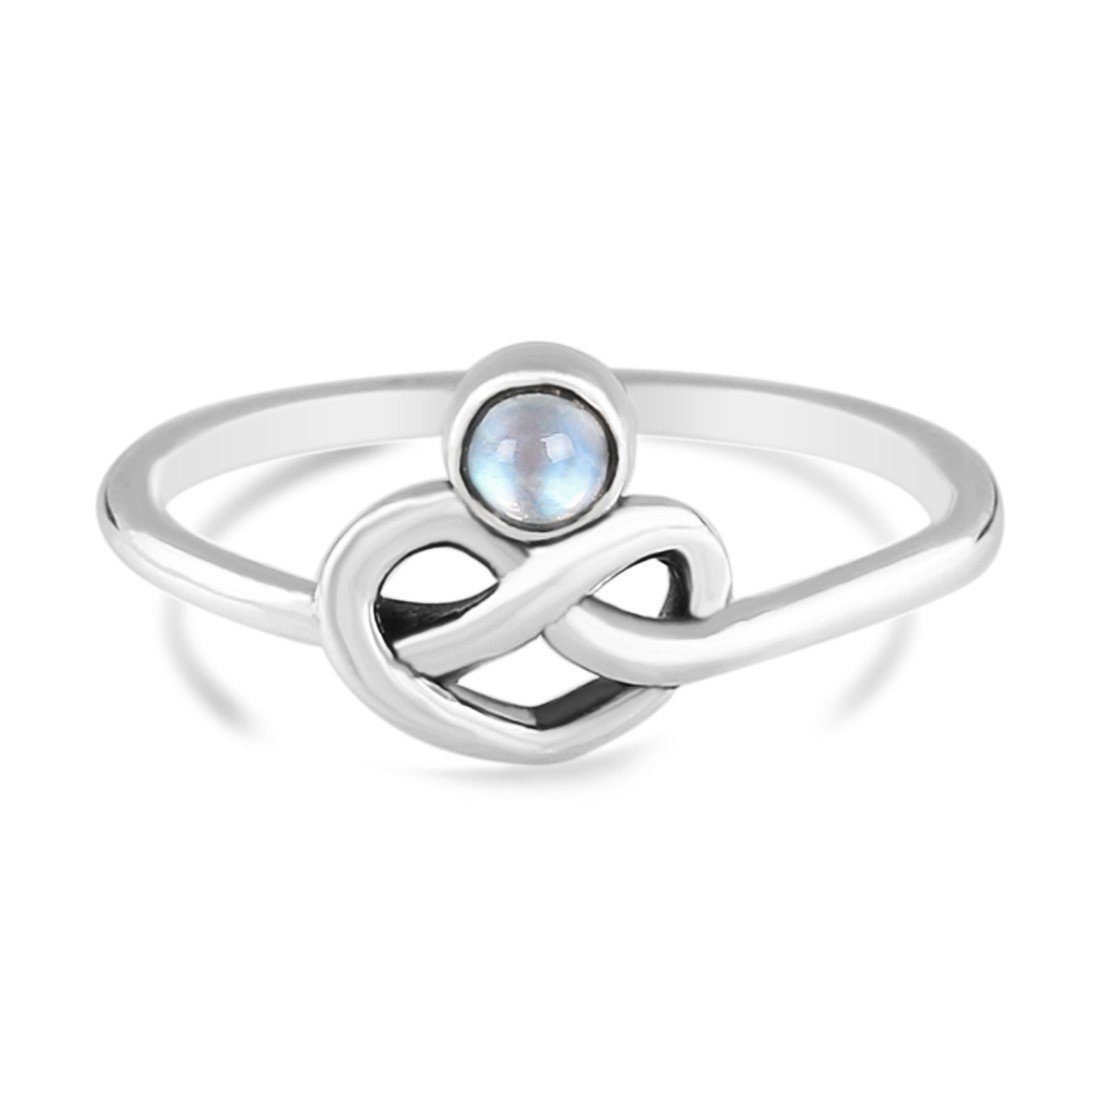 Moonstone Ring-Glory Sale Item 925 SILVER & MOONSTONE